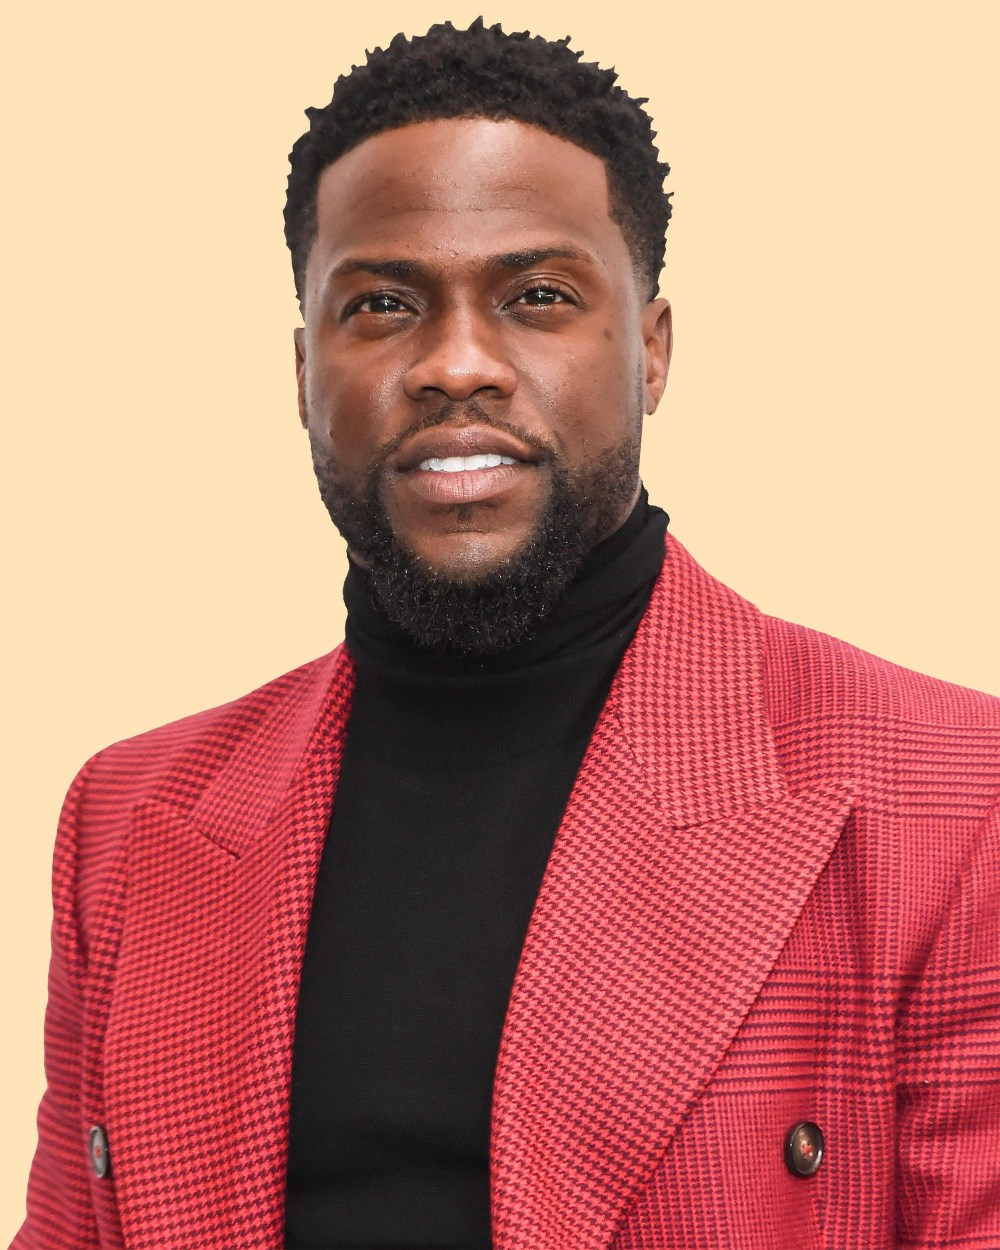 Two completely different America we are living in, if those who invaded the Capitol building are black they would have all been shot dead - Kevin Hart